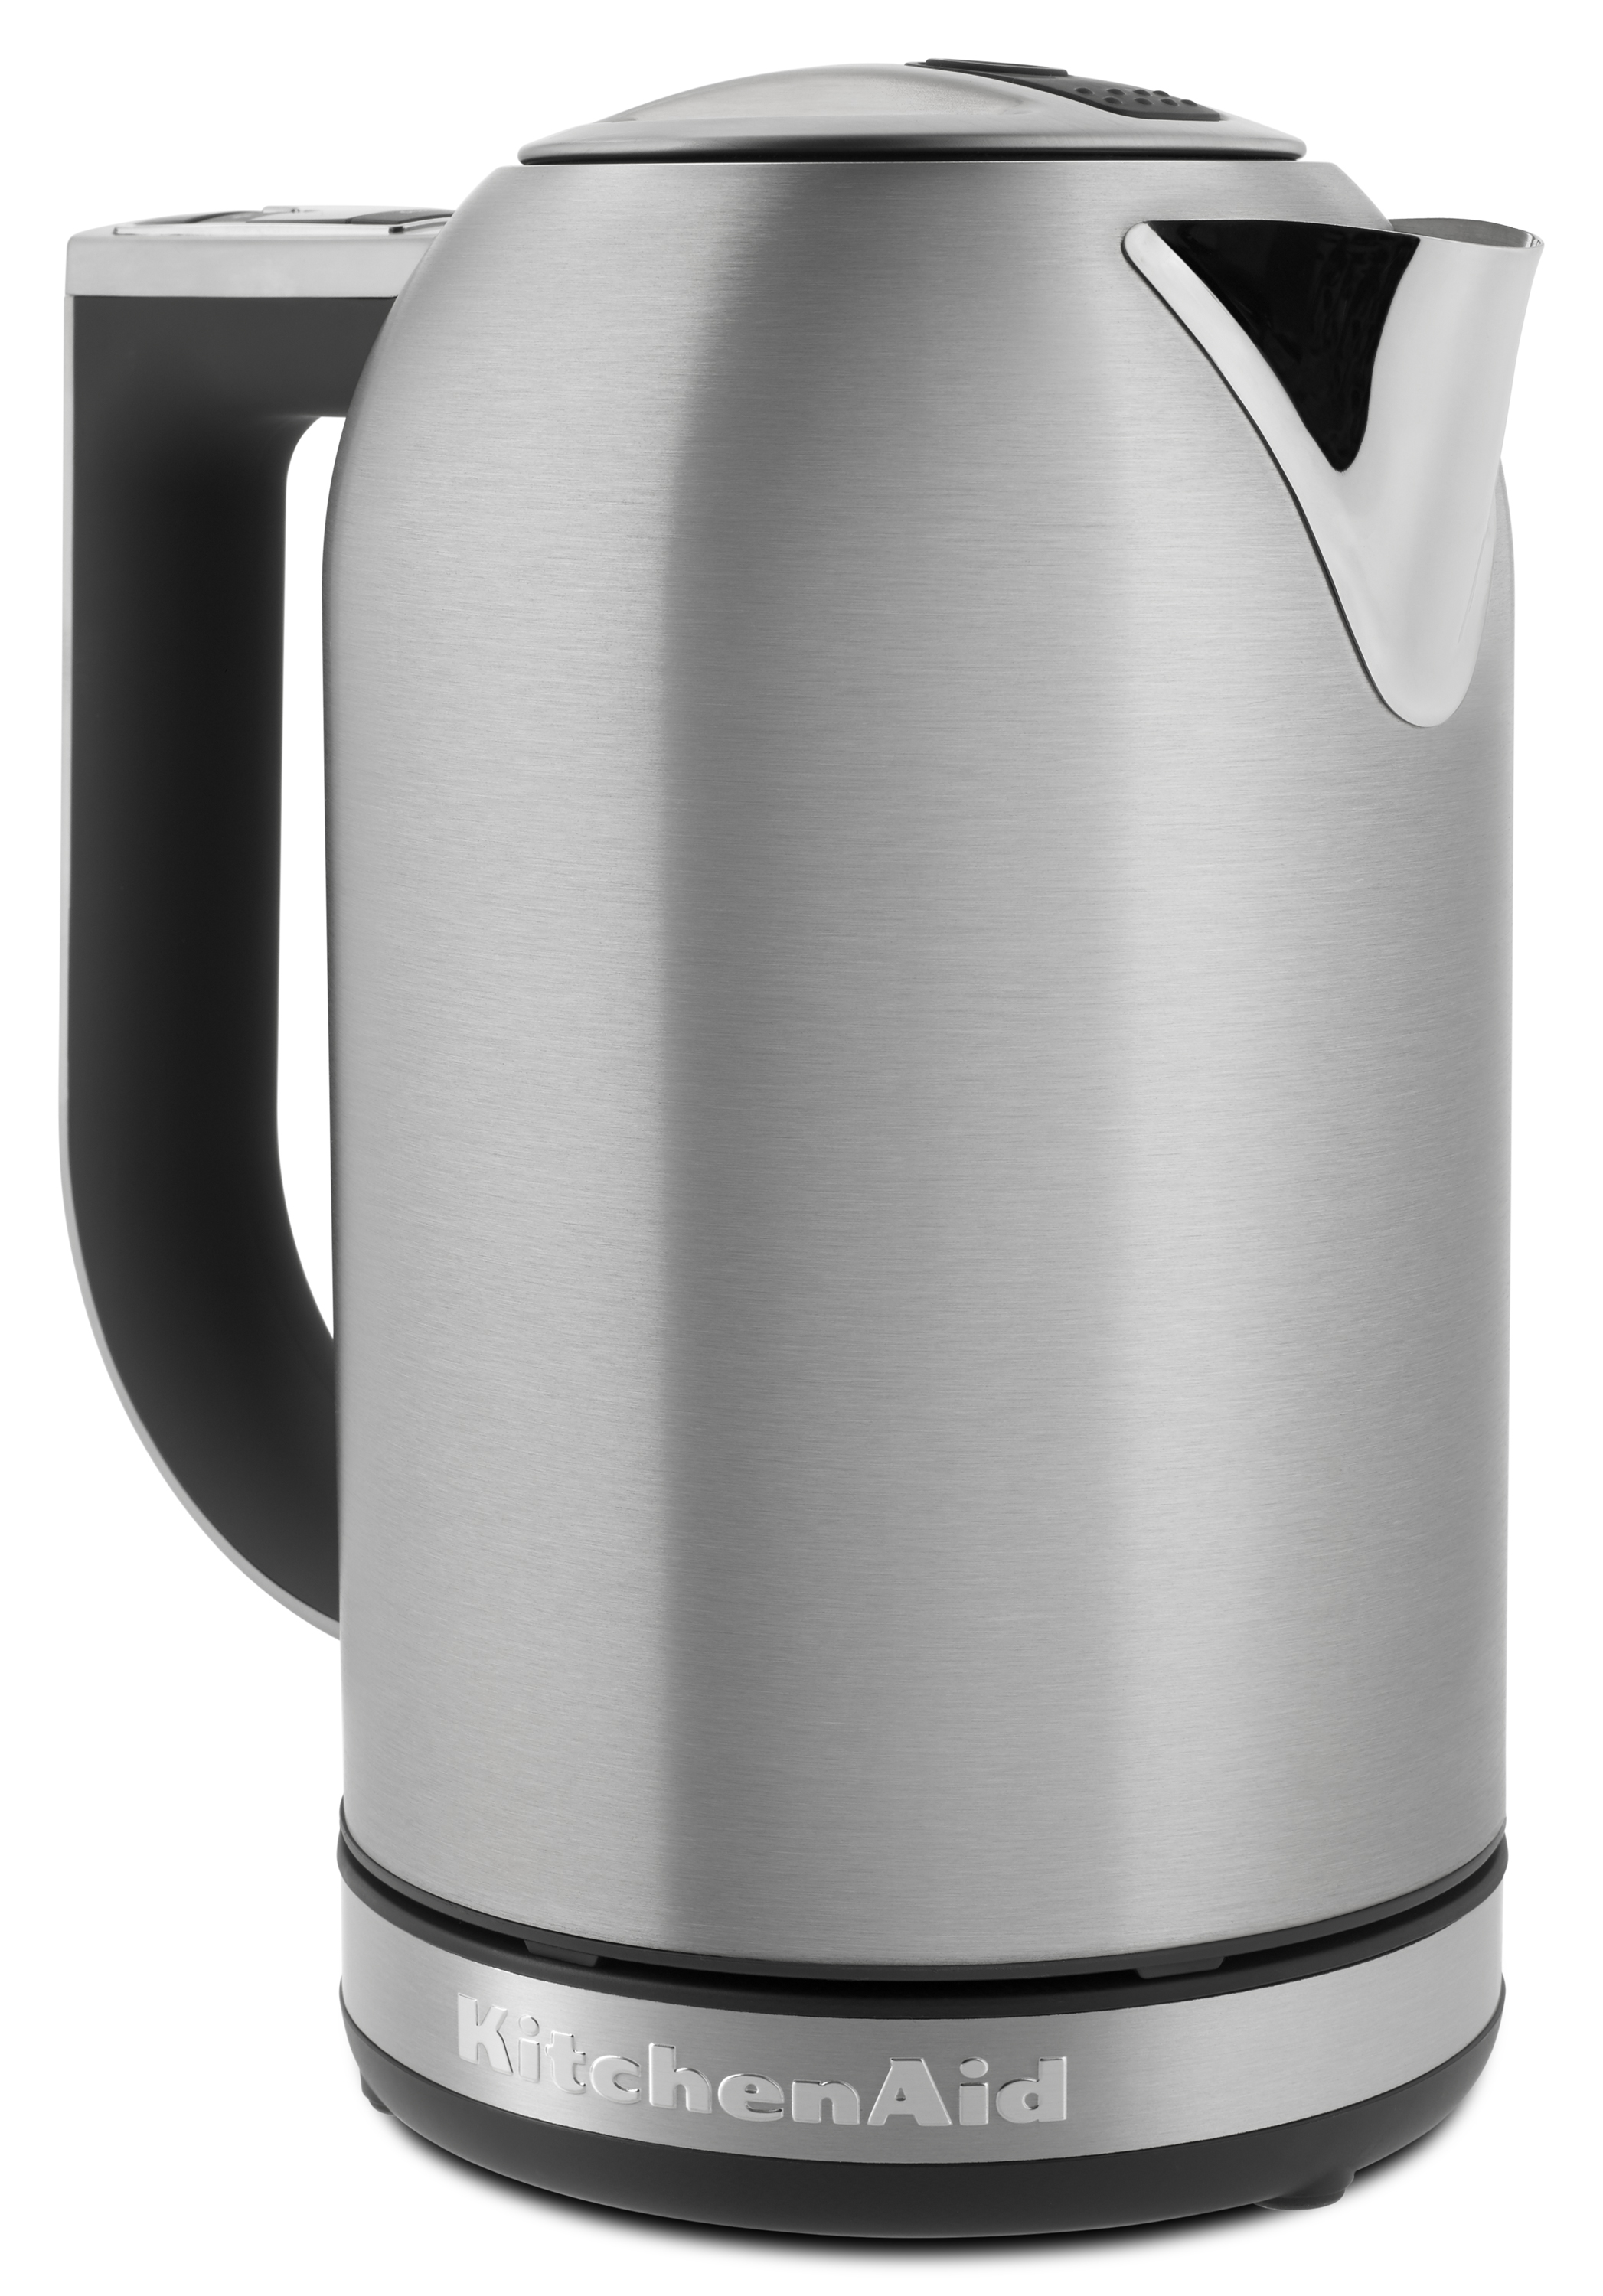 kitchen aid electric kettle metal island cart kitchenaid 1 7l with led display brushed stainless steel kek1722sx walmart com